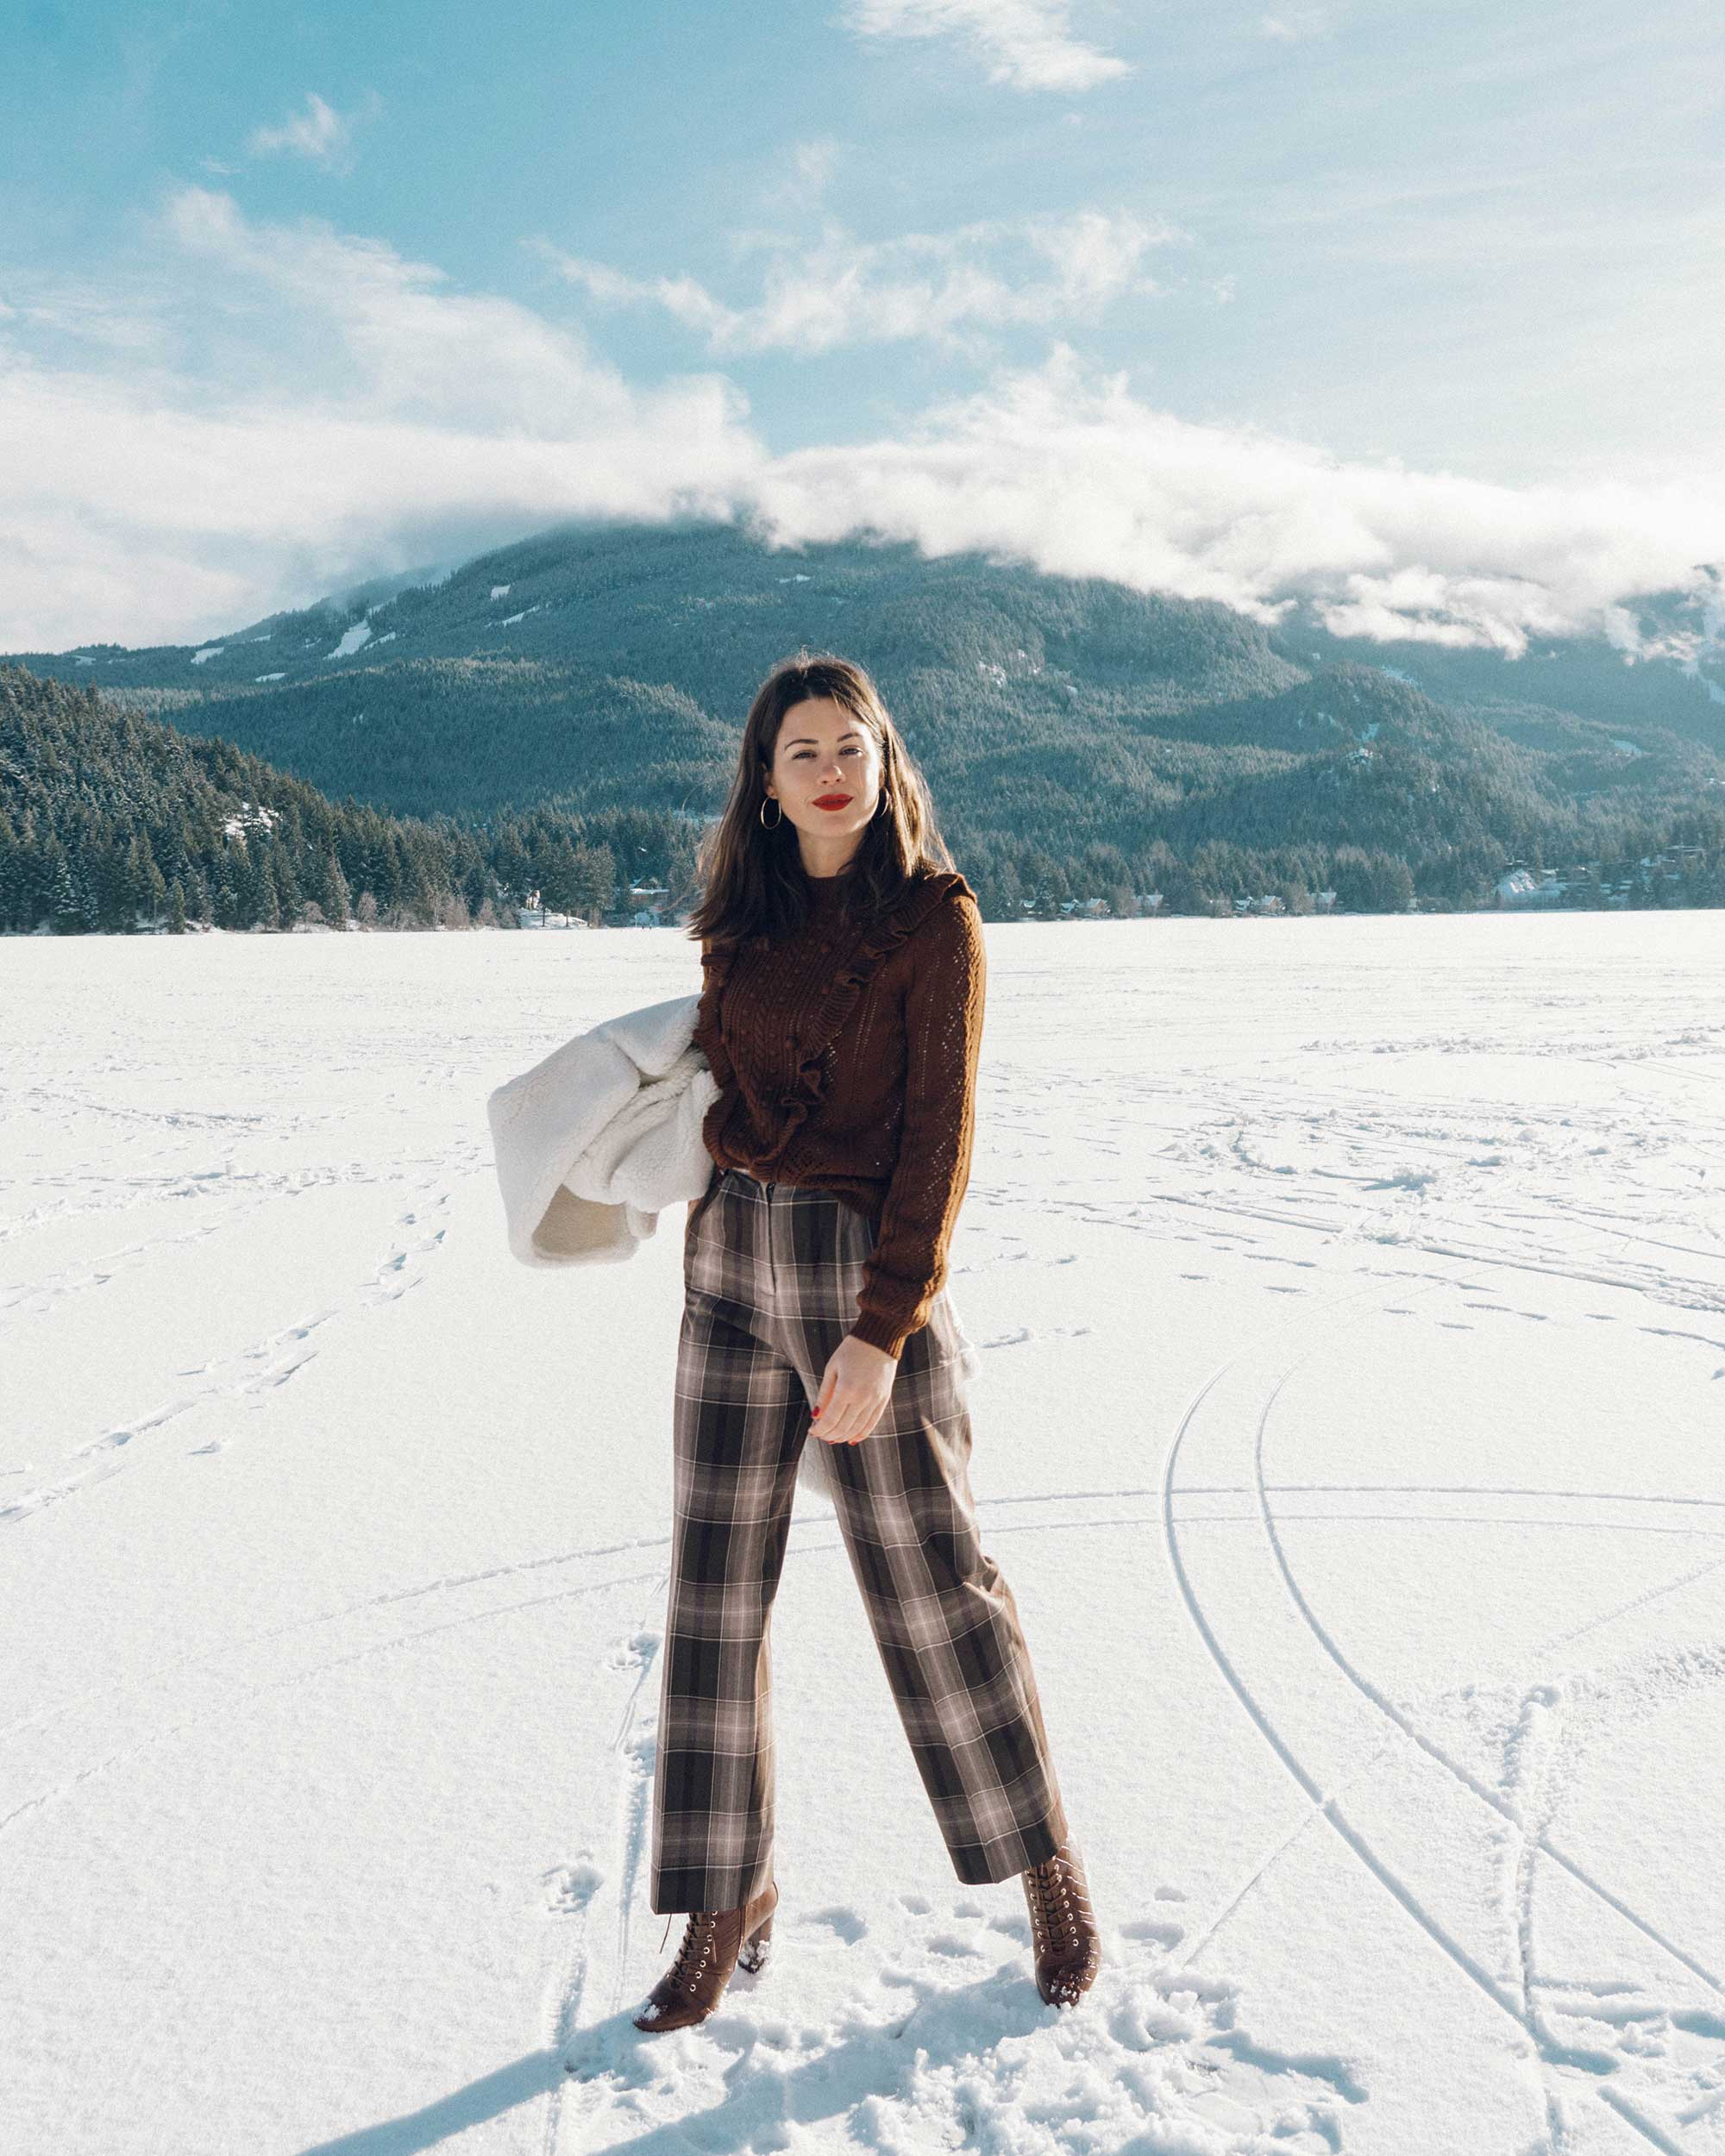 & Other Stories Tailored Brown Plaid Pants with pleats, white Faux Shearling Coat,  winter snow outfit, whistler canada8.jpg